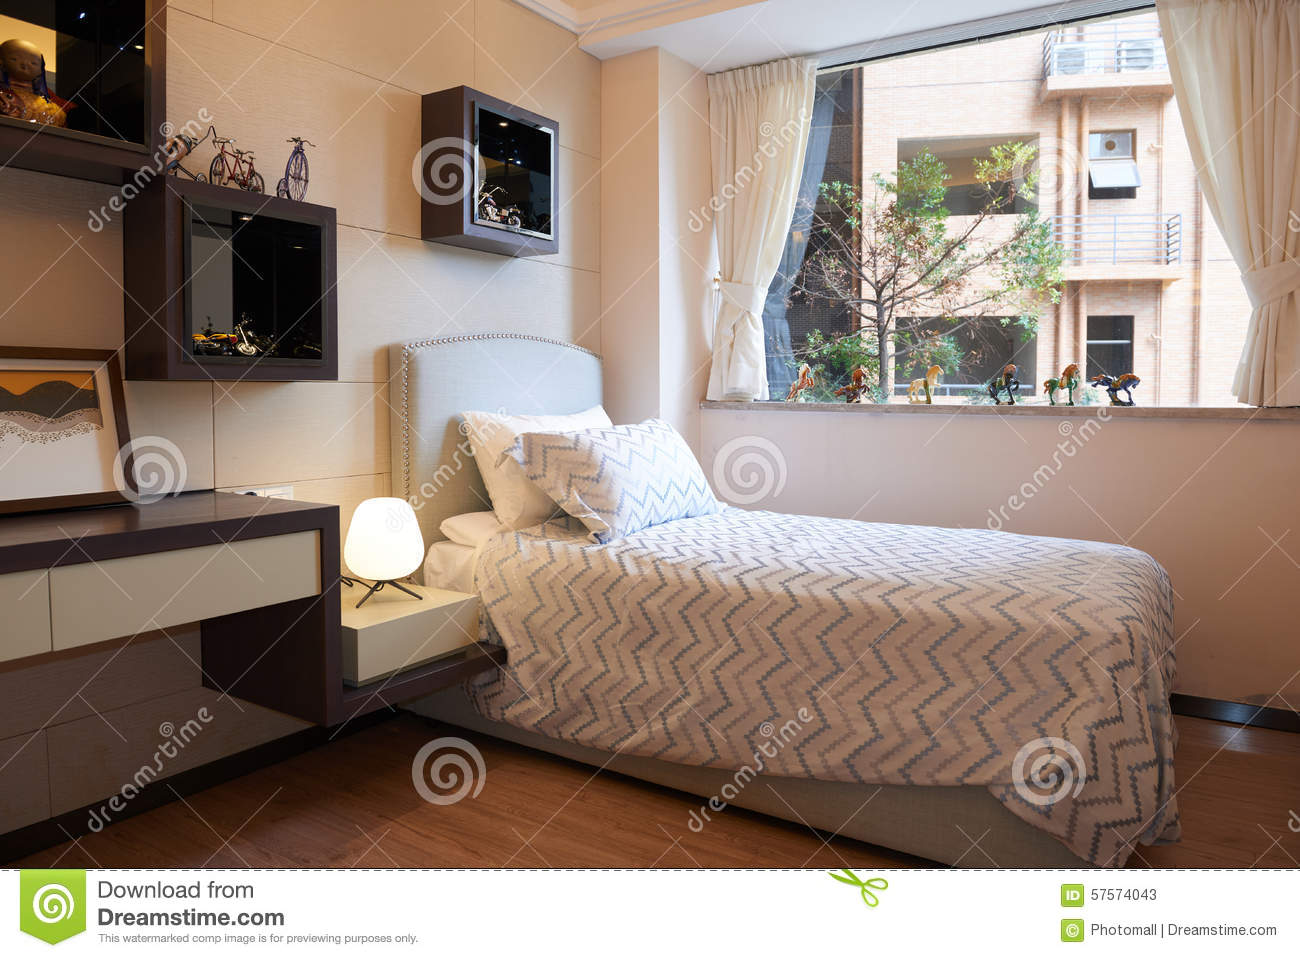 small bedroom royalty free stock photography 57634877. Black Bedroom Furniture Sets. Home Design Ideas